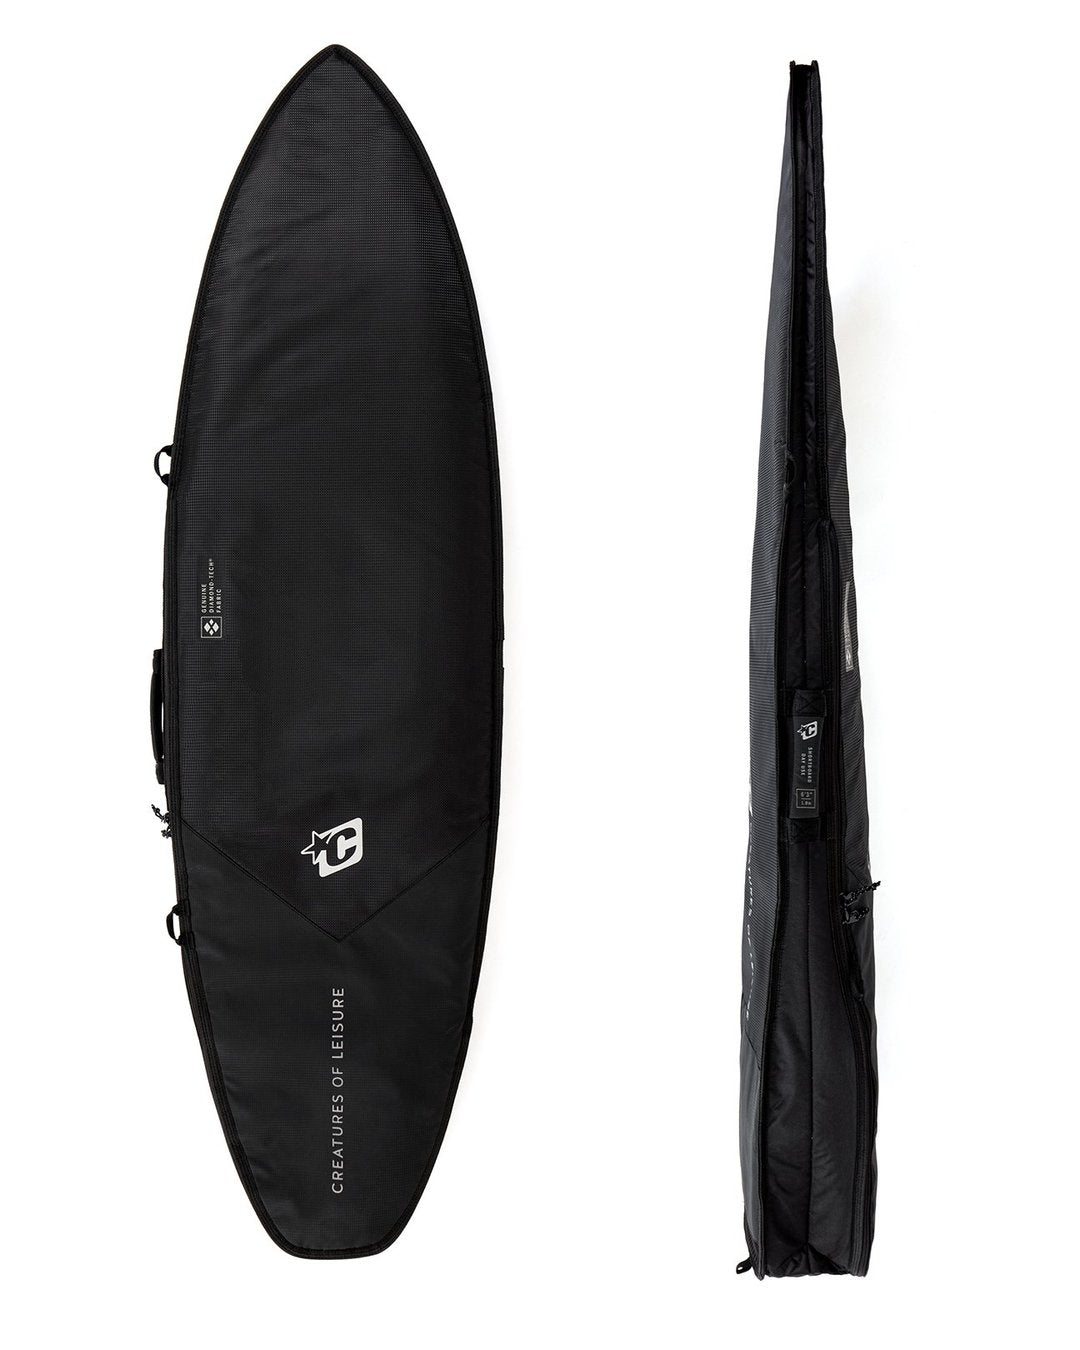 "Creatures SHORTBOARD DAY USE DT2.0 6'3"" : BLACK SILVER - Board Store CreaturesBoardcover"